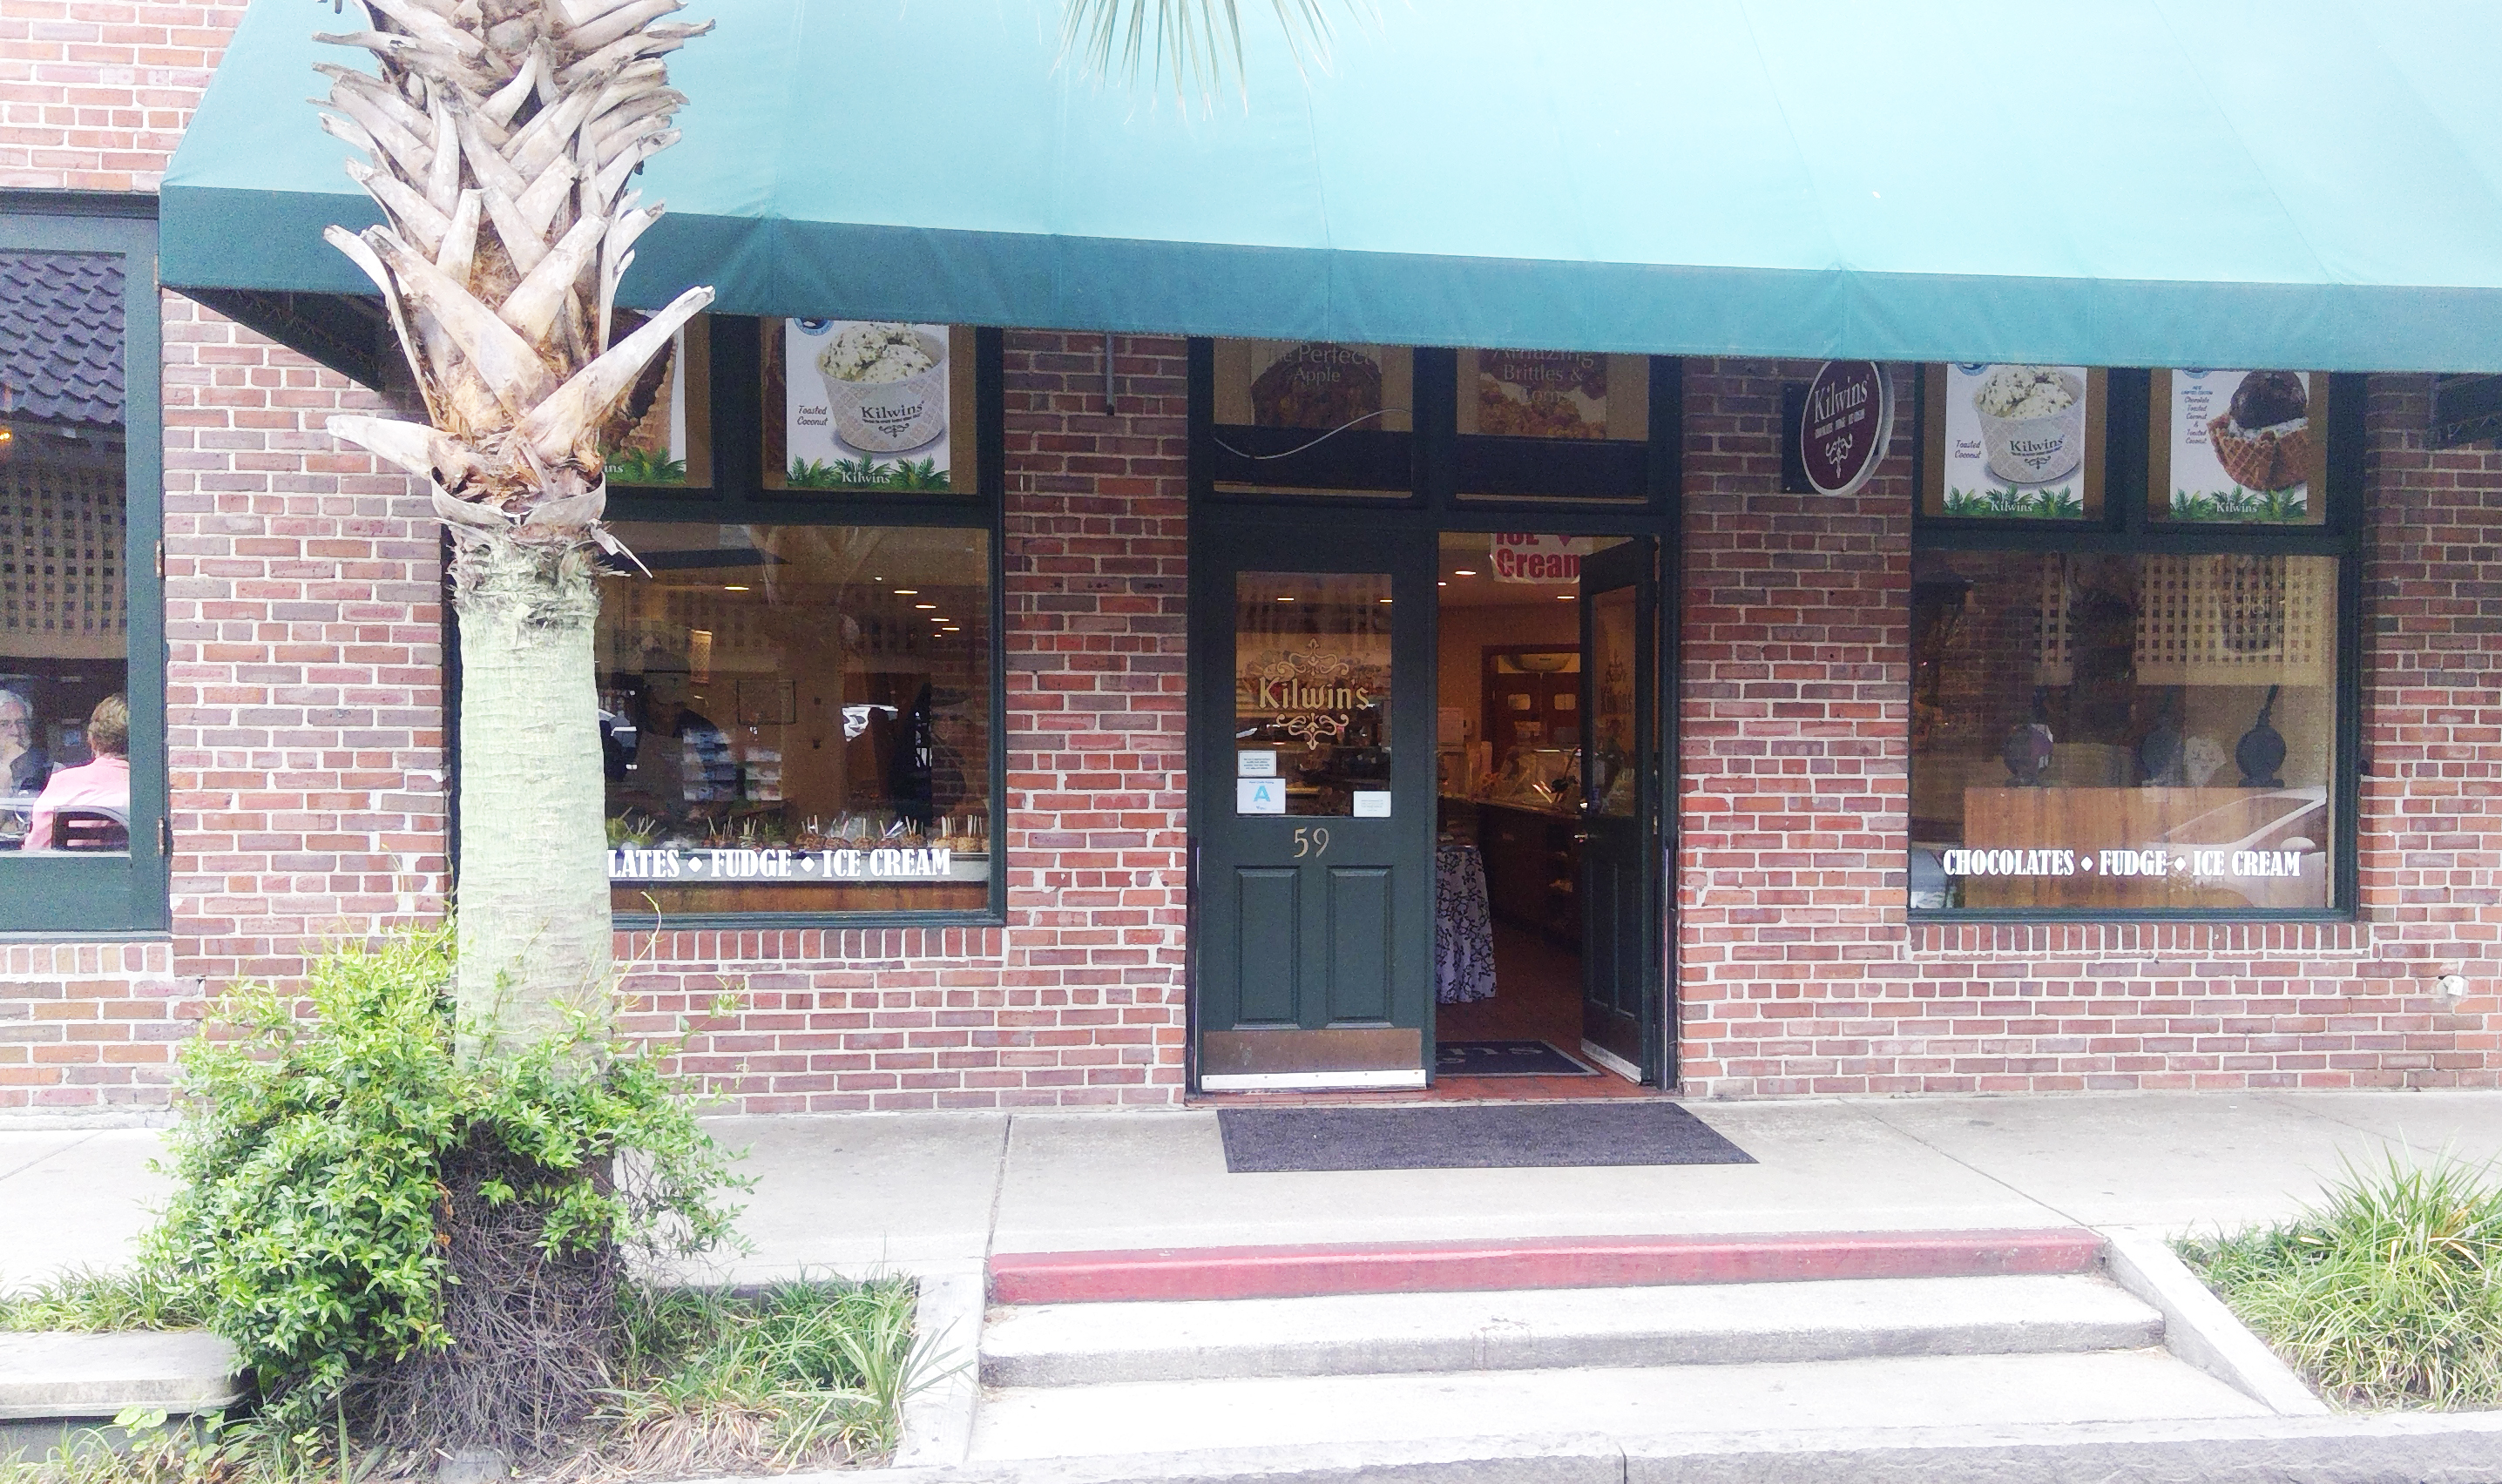 Picture of the Kilwins Charleston store front